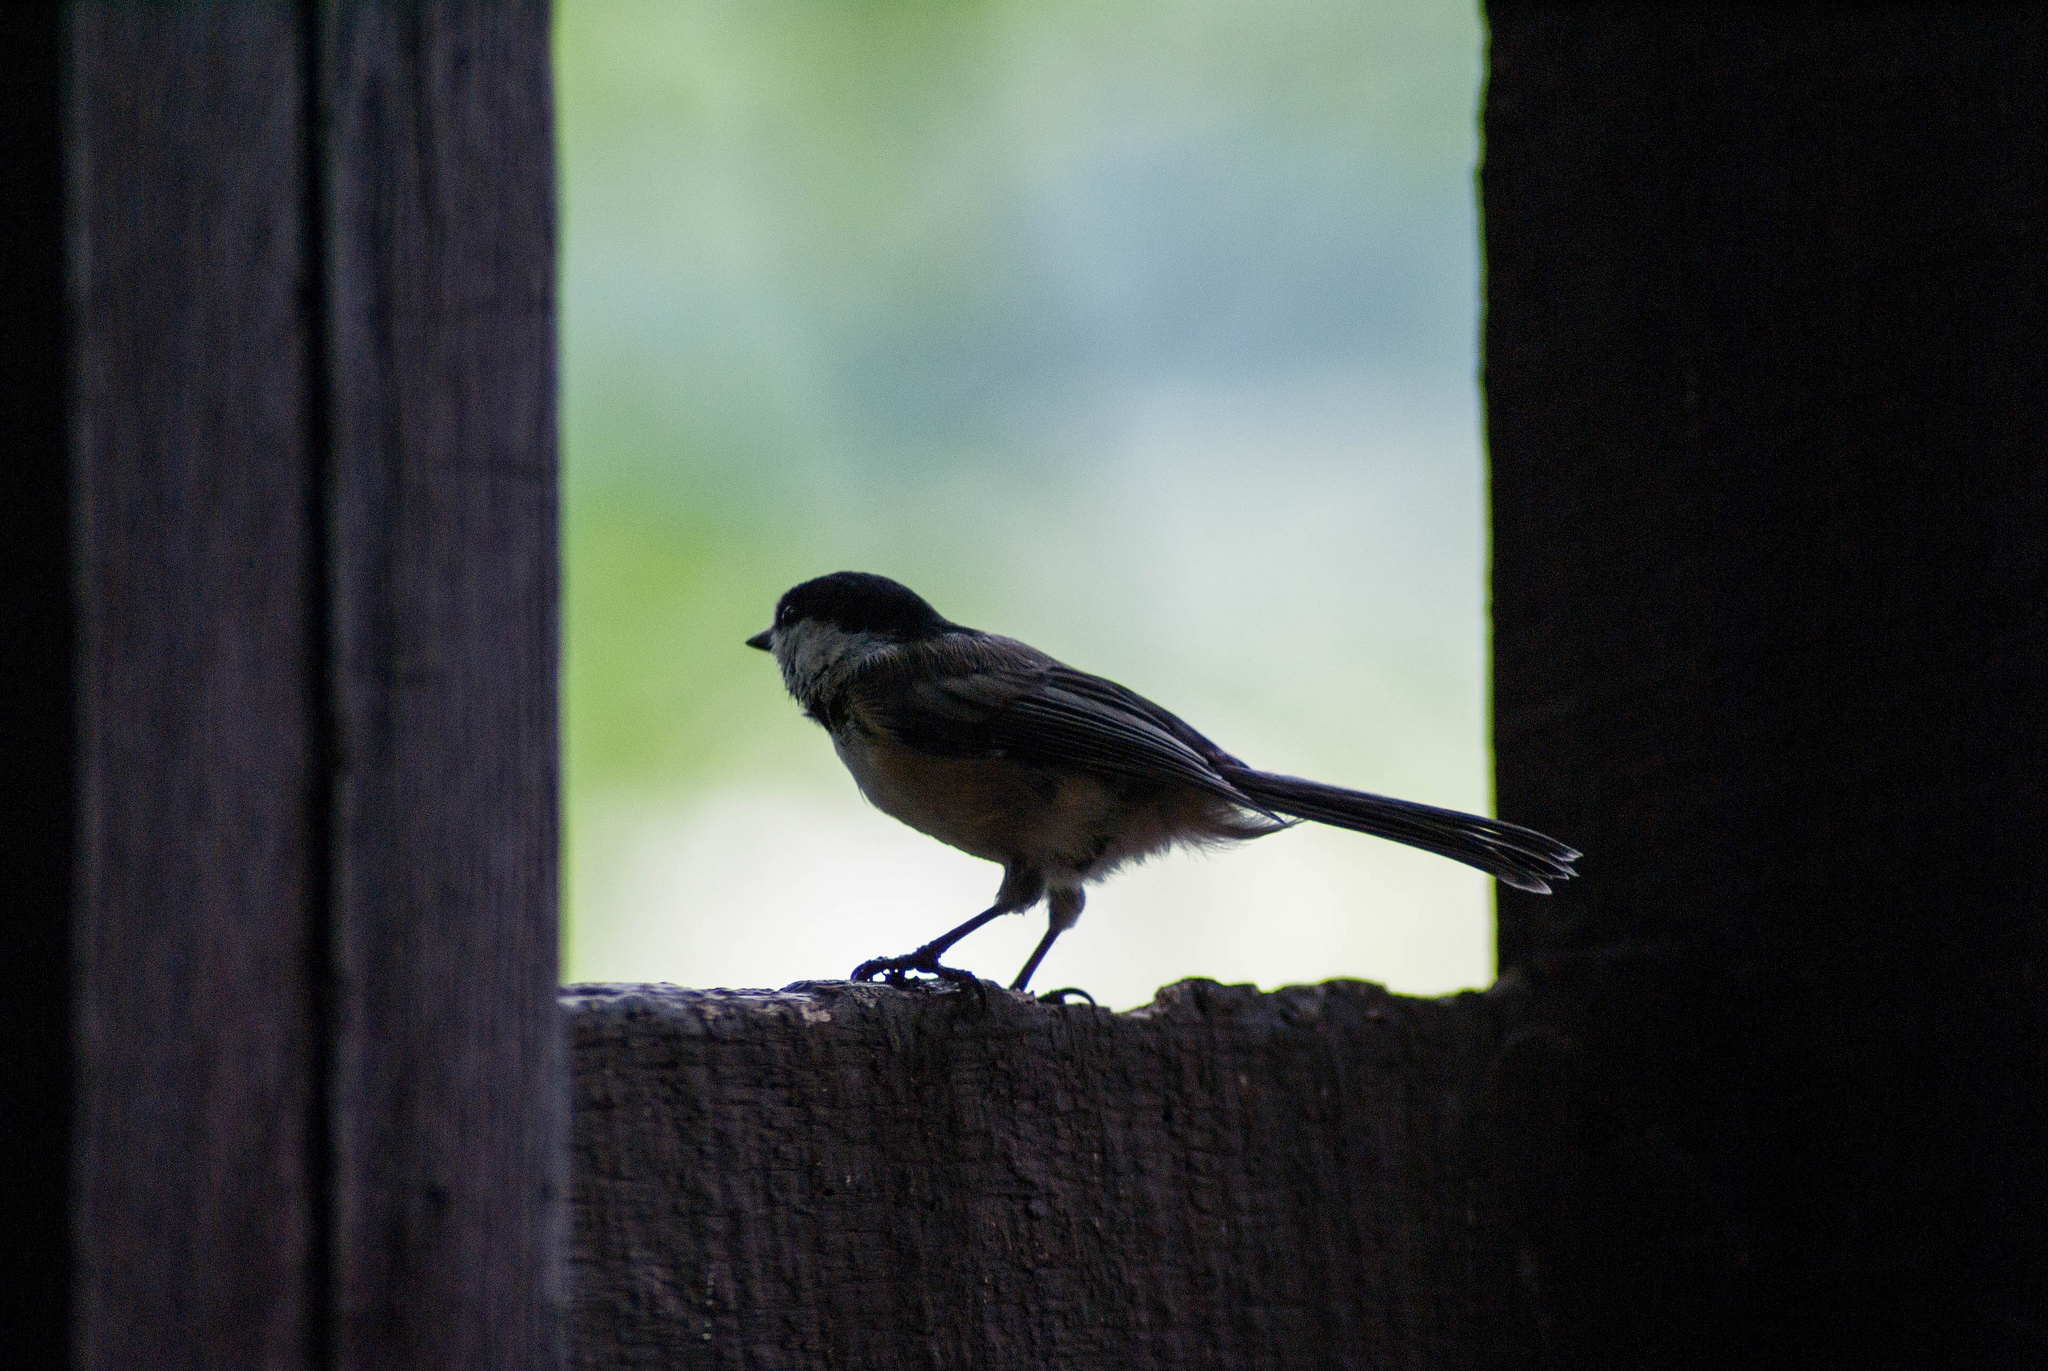 Small bird sits on wooden ledge peeking outdoors